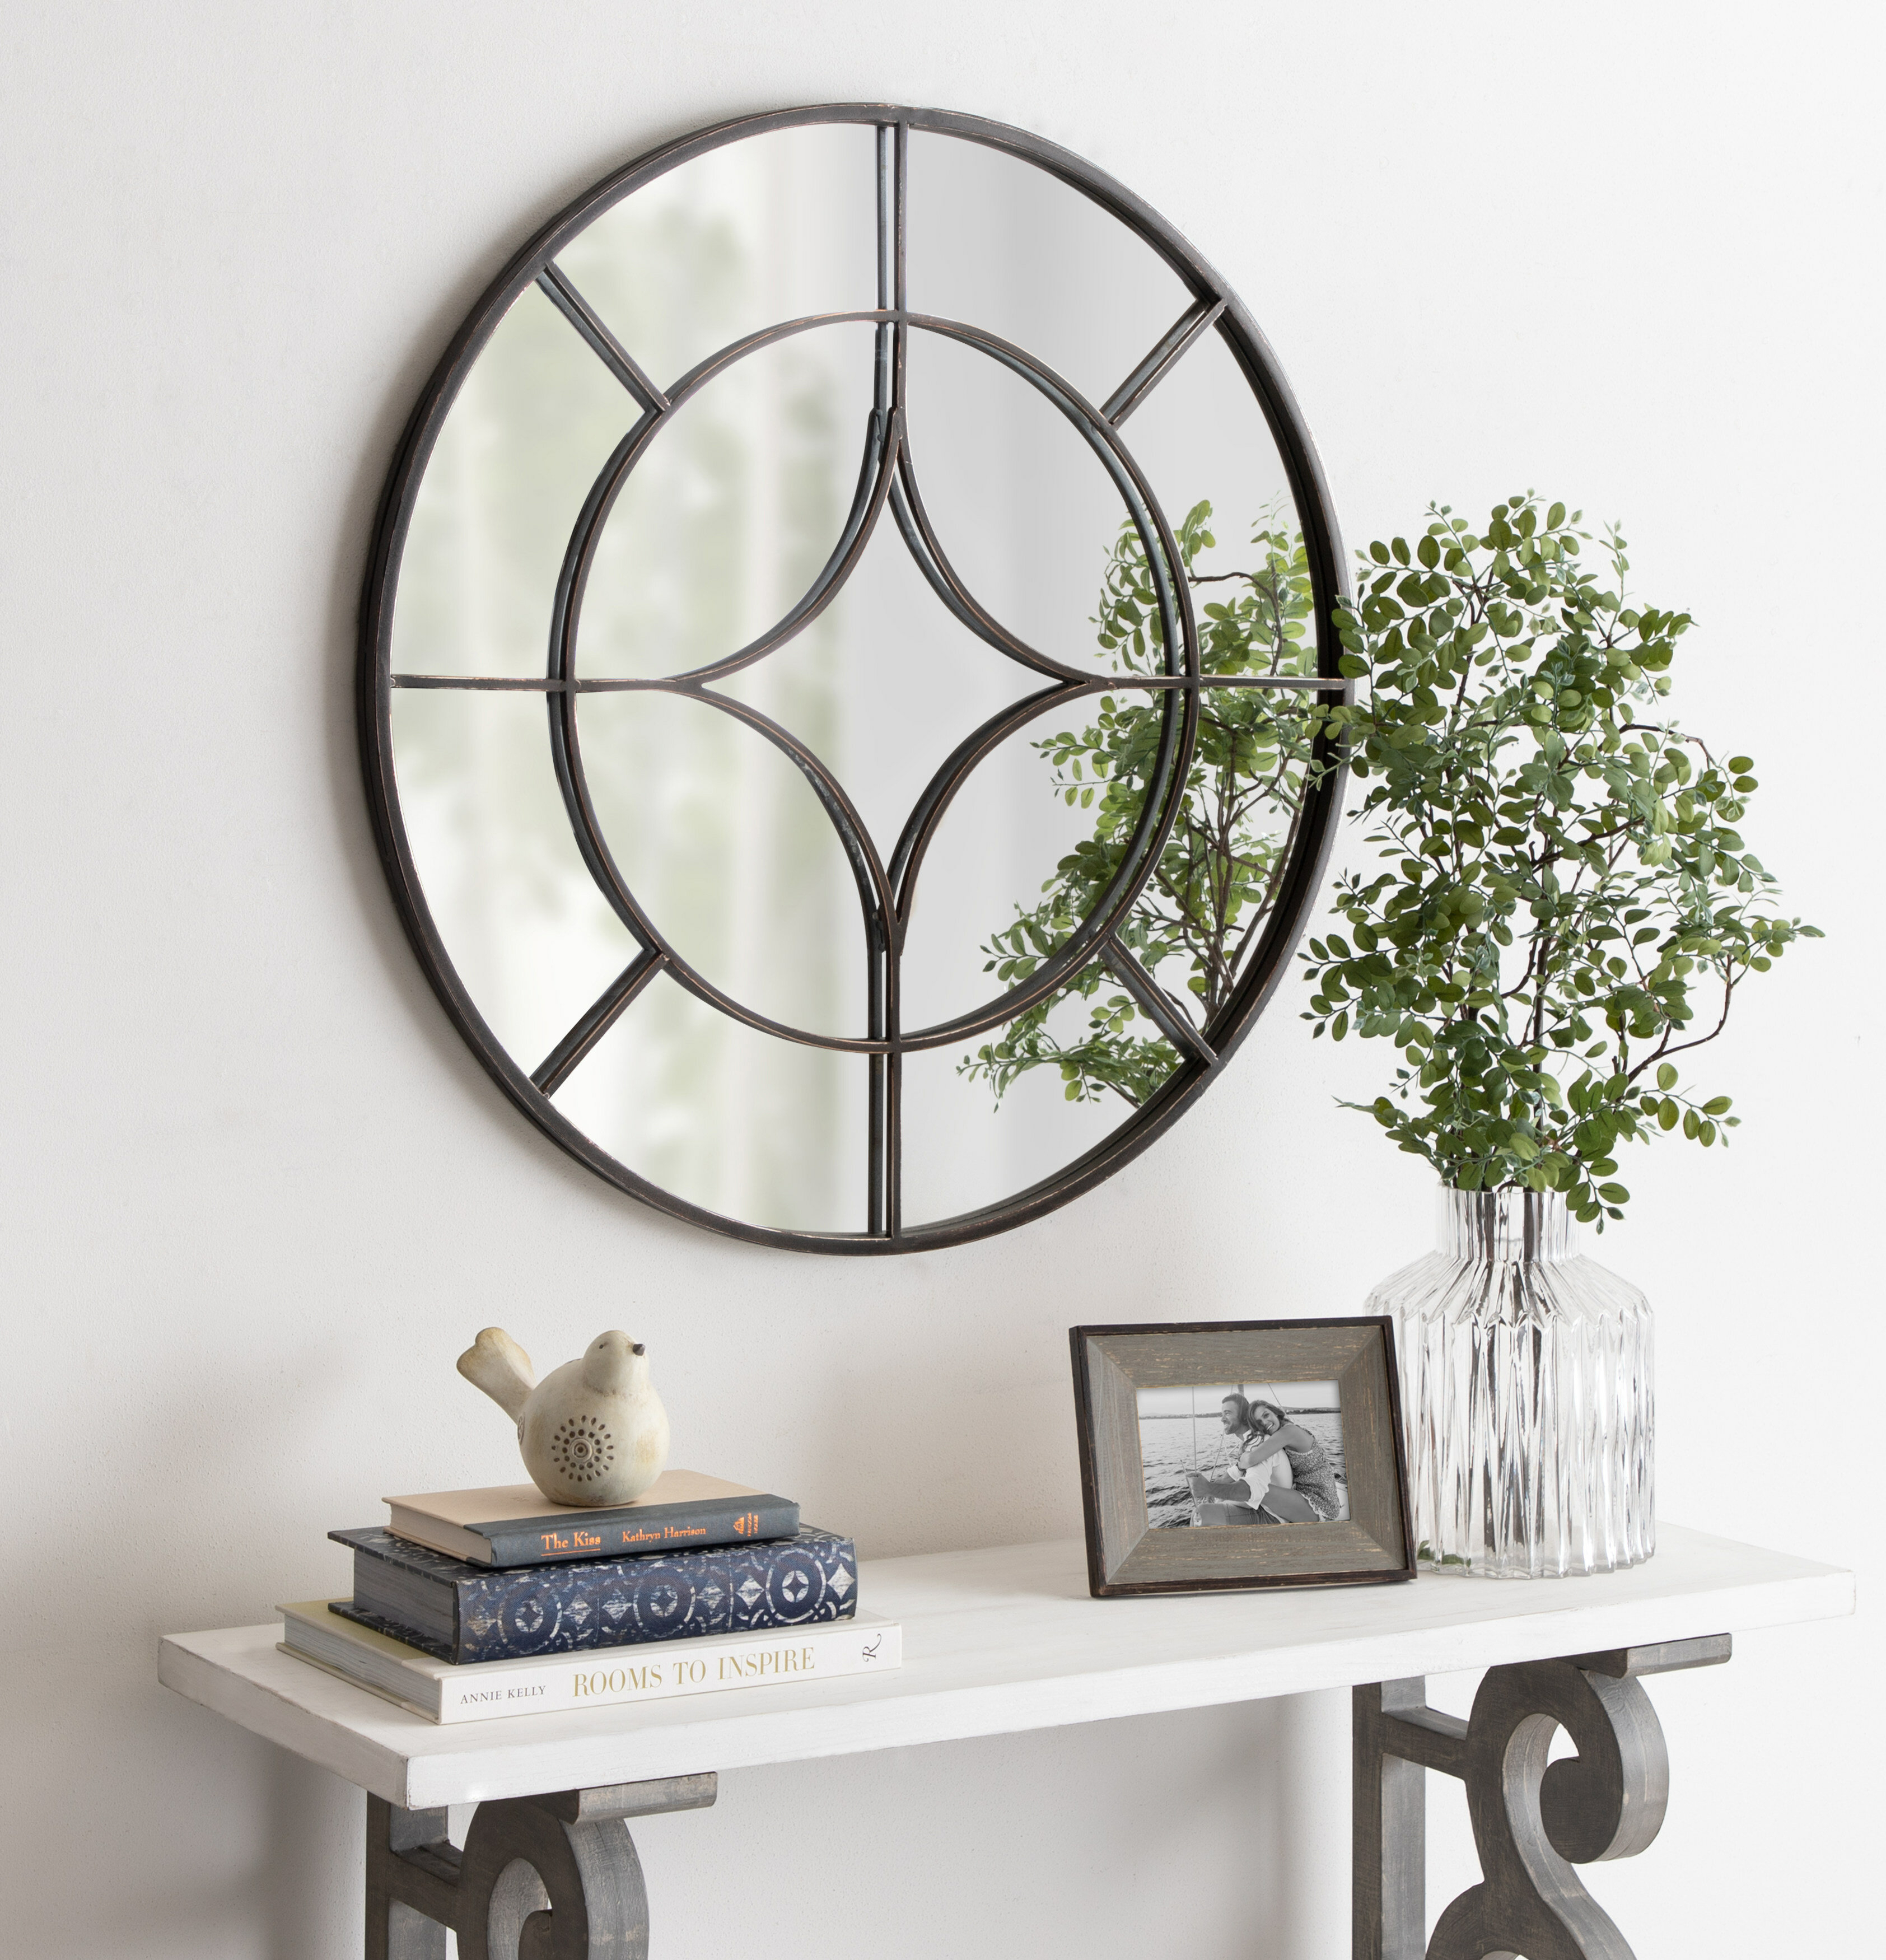 Hanska Industrial Modern Overlaid Beveled Frameless Accent Mirror Pertaining To Arrigo Accent Mirrors (View 4 of 20)